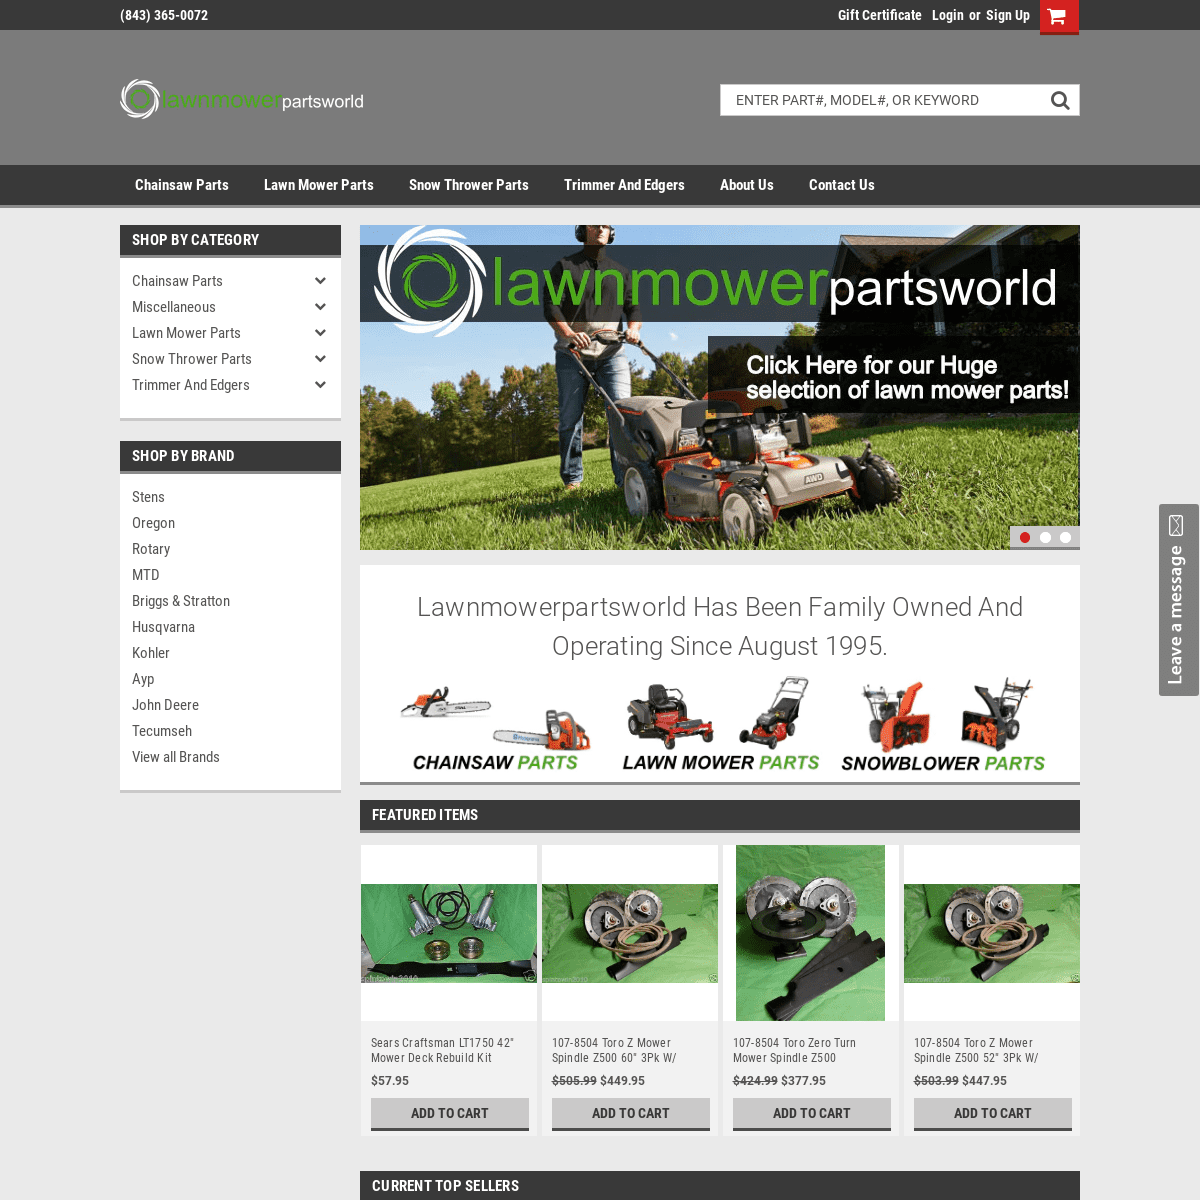 lawnmowerpartsworld - Lawn Mower Parts - Chainsaw Parts - Snowblower Parts - Trimmers and Edgers